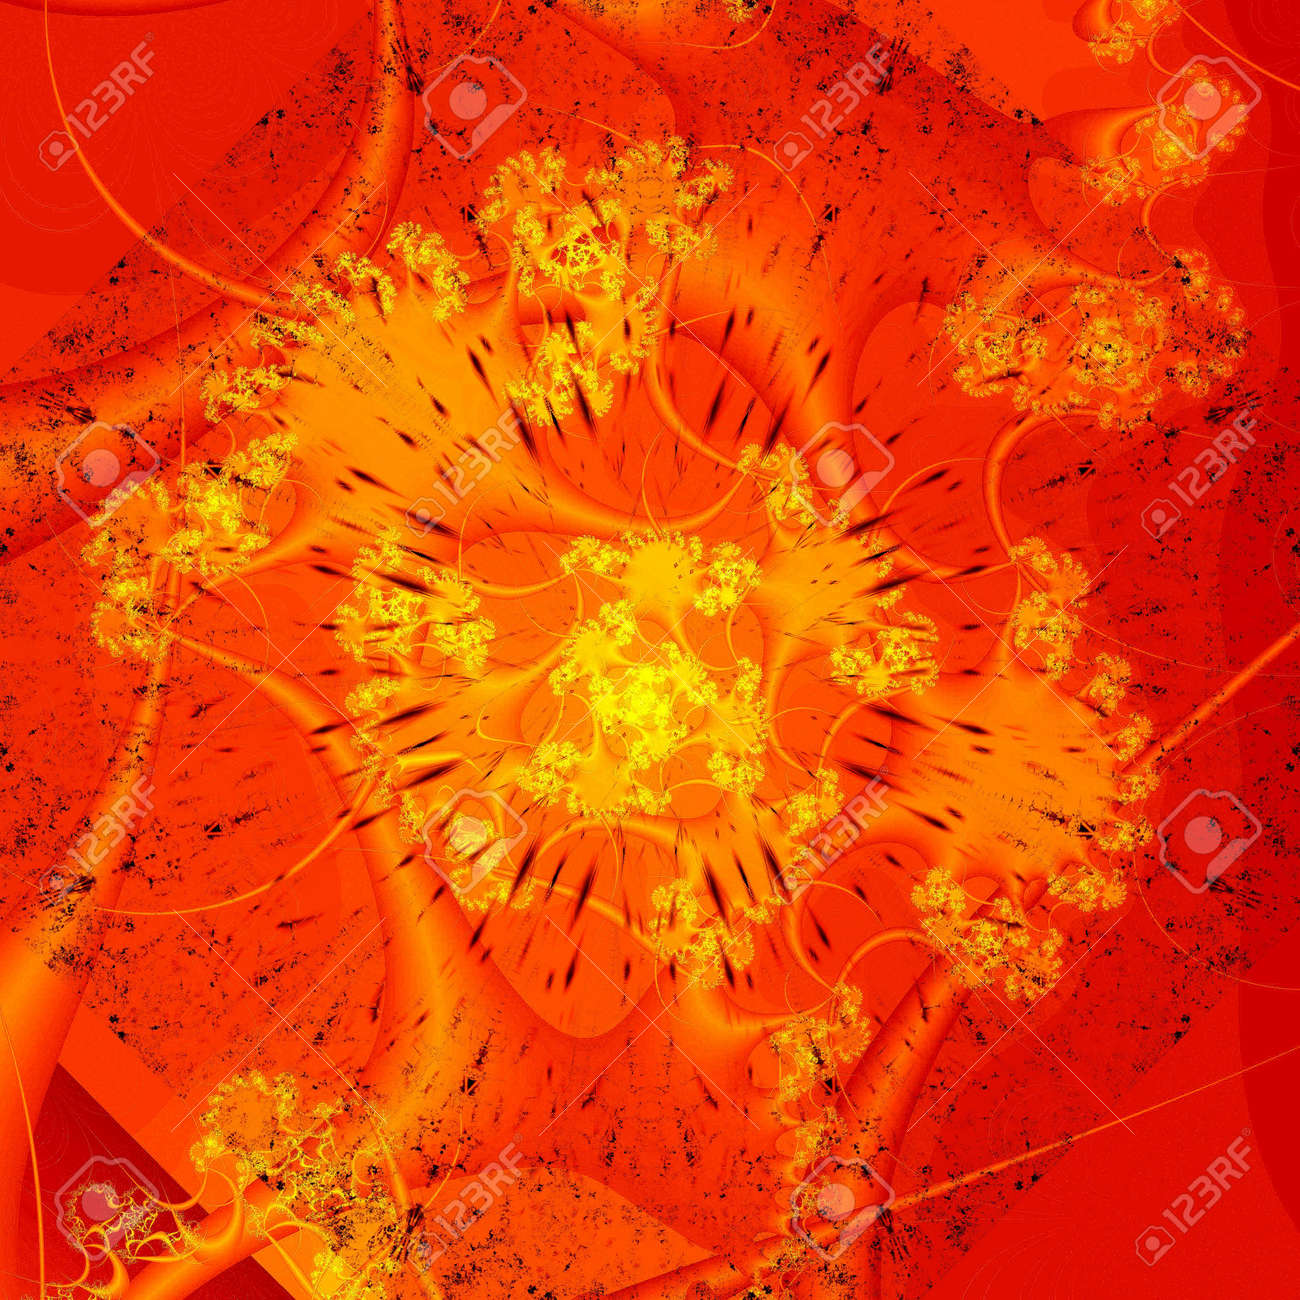 computer generated abstract wallpaper Stock Photo - 6476944